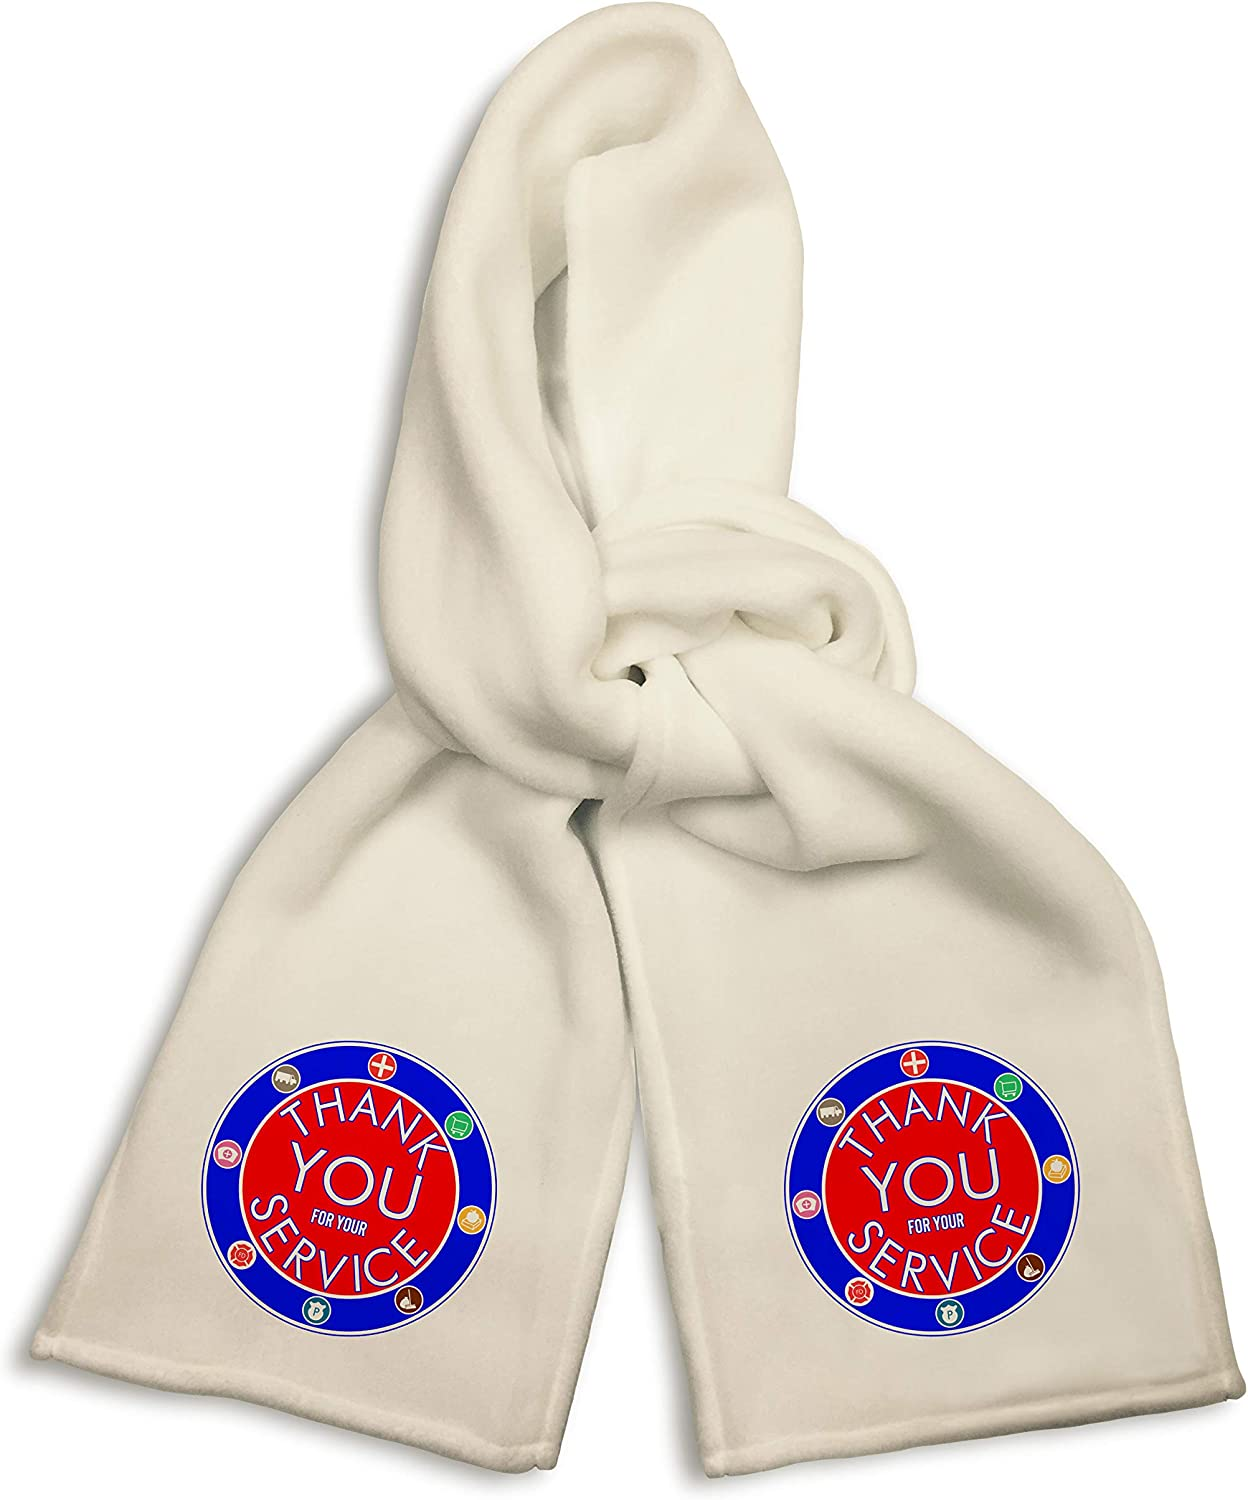 White Winter Scarf - Thank You for Your Service Public Servant Workers Appreciation